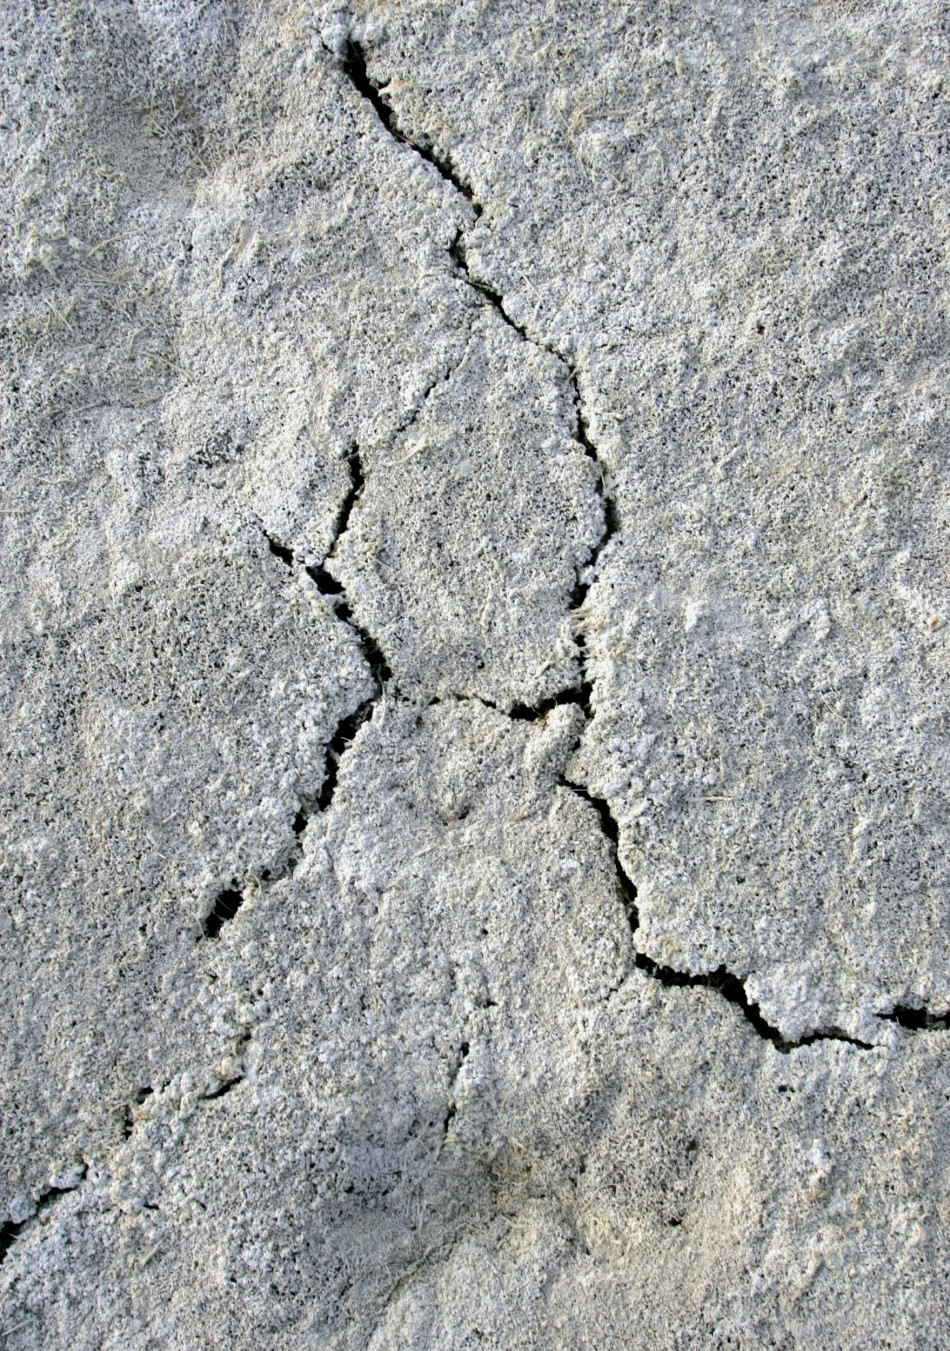 A close-up of the dry and salted soil of the Aral sea near the village of Karateren, southwestern Kazakhstan